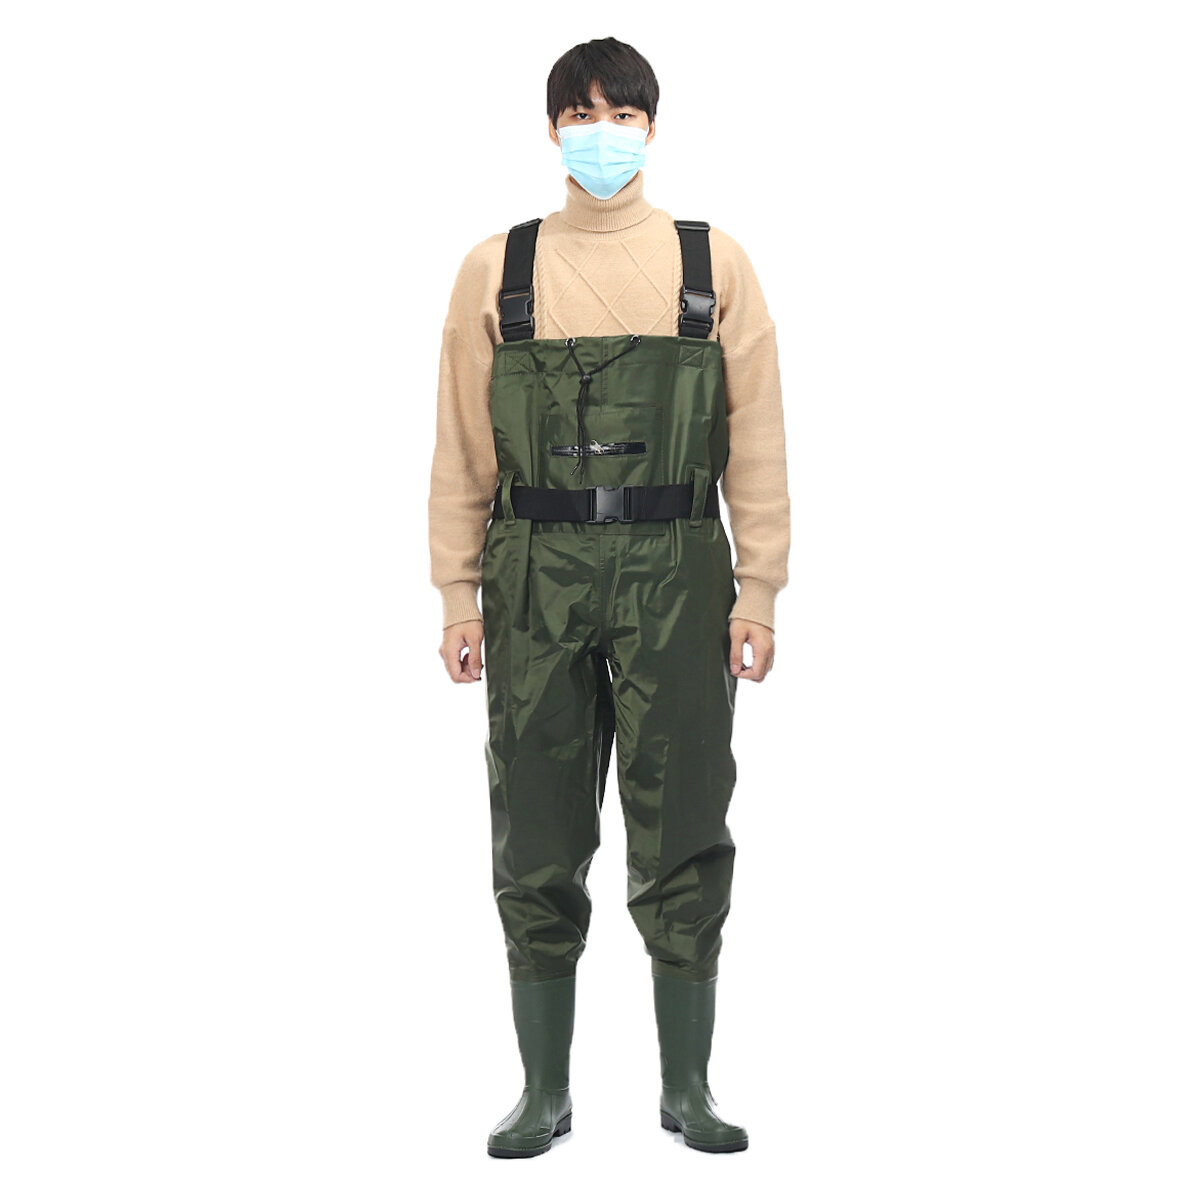 Outdoor Breathable Wader Pants Fishing Waders Durable Comfortable Stocking Foot Chest Pants Fishing Apparels For Men